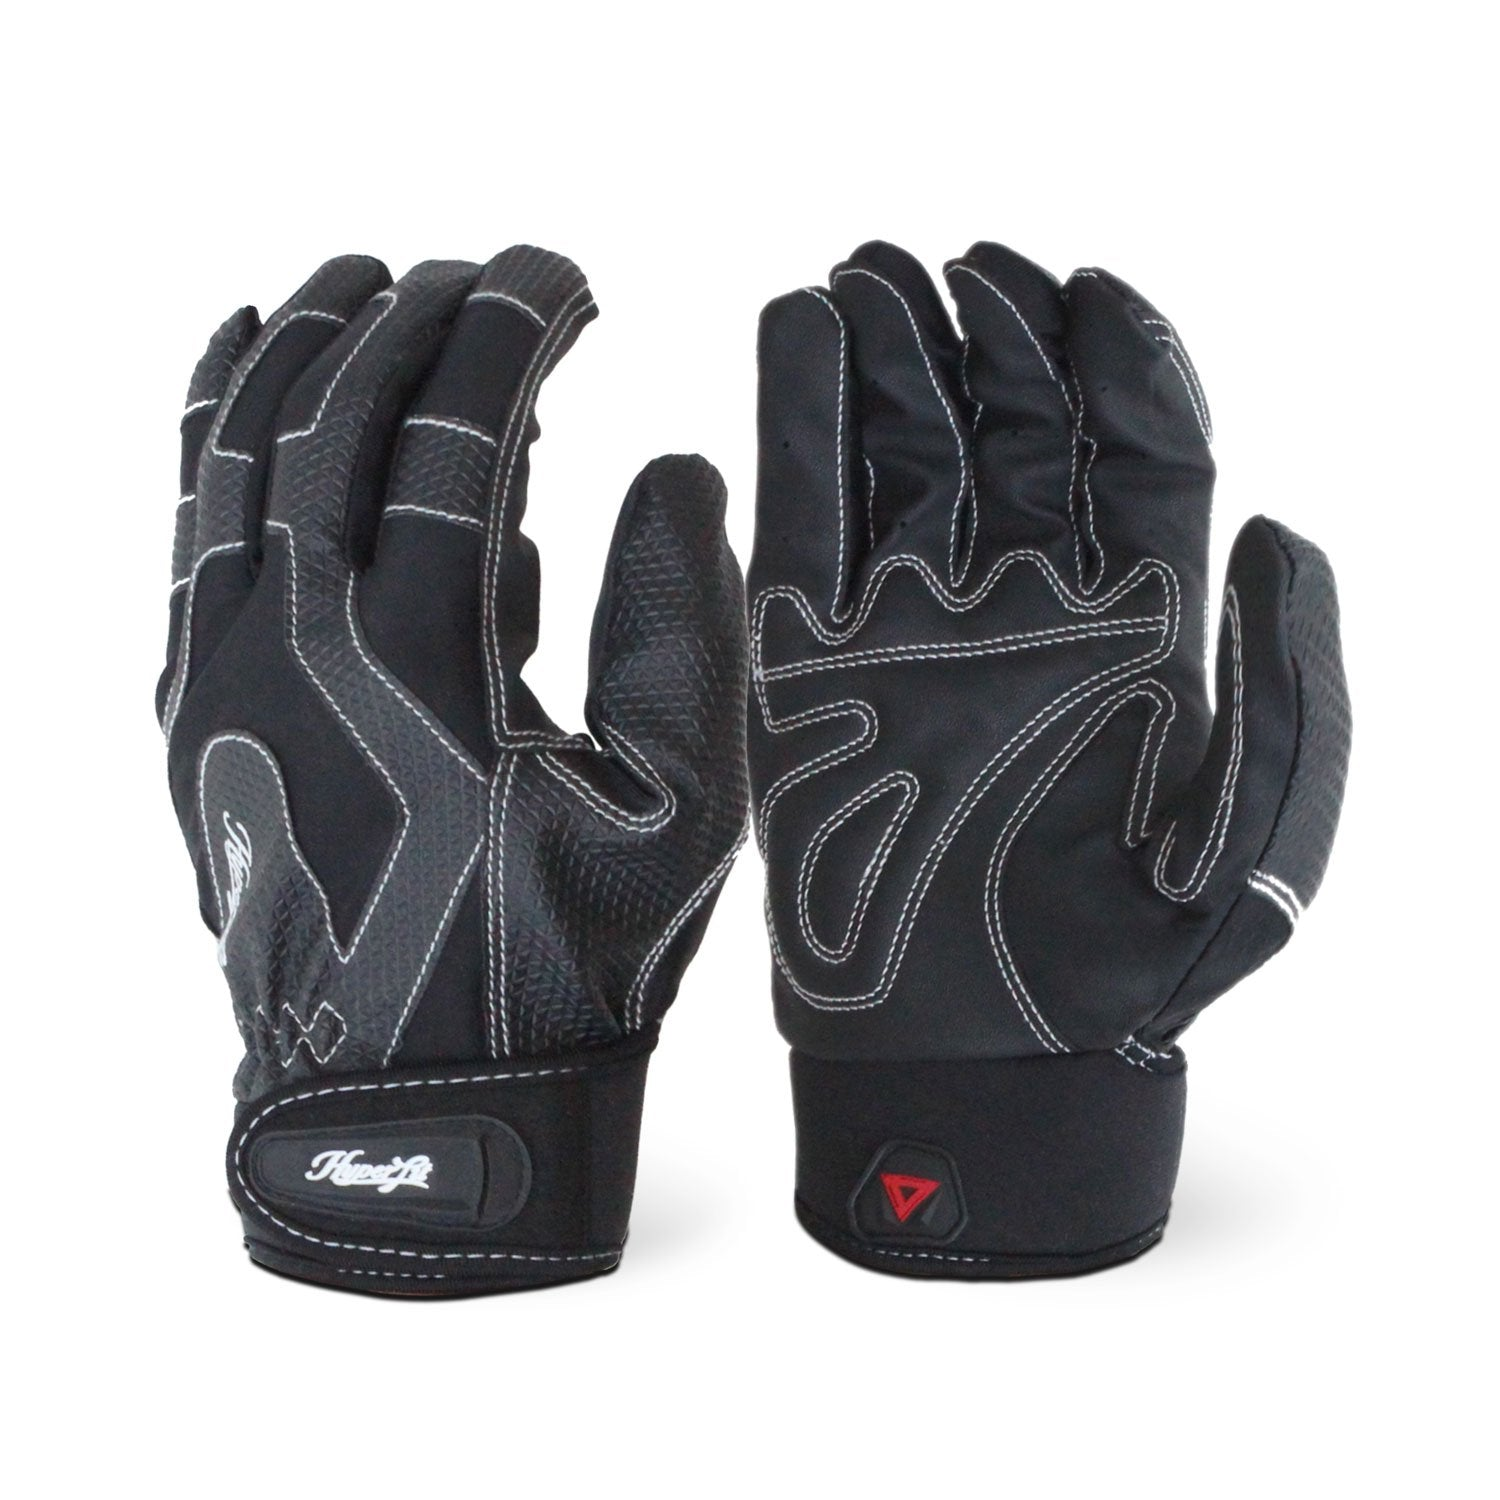 Superior Grip Automotive Black PU Mechanic Glove